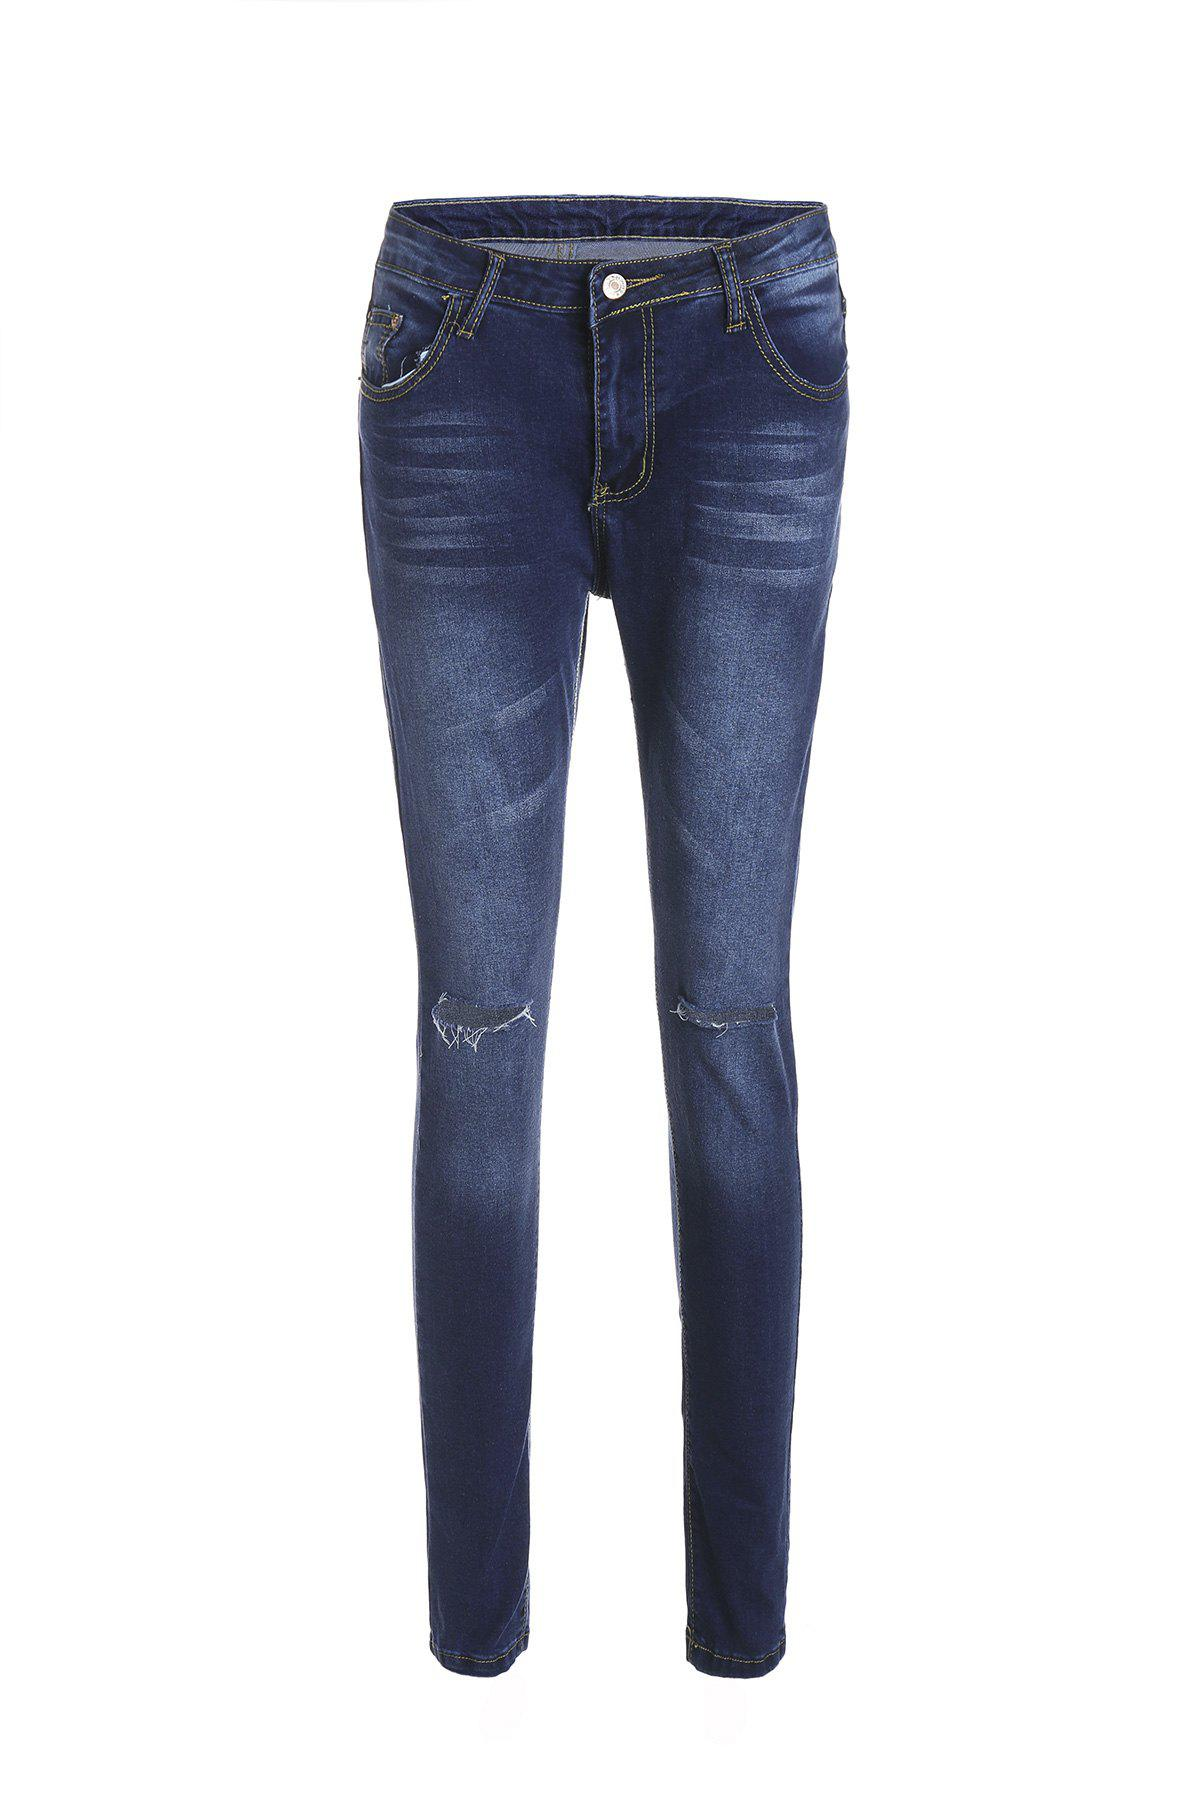 Stylish High-Waisted Skinny Ripped Women's Jeans - DEEP BLUE XL